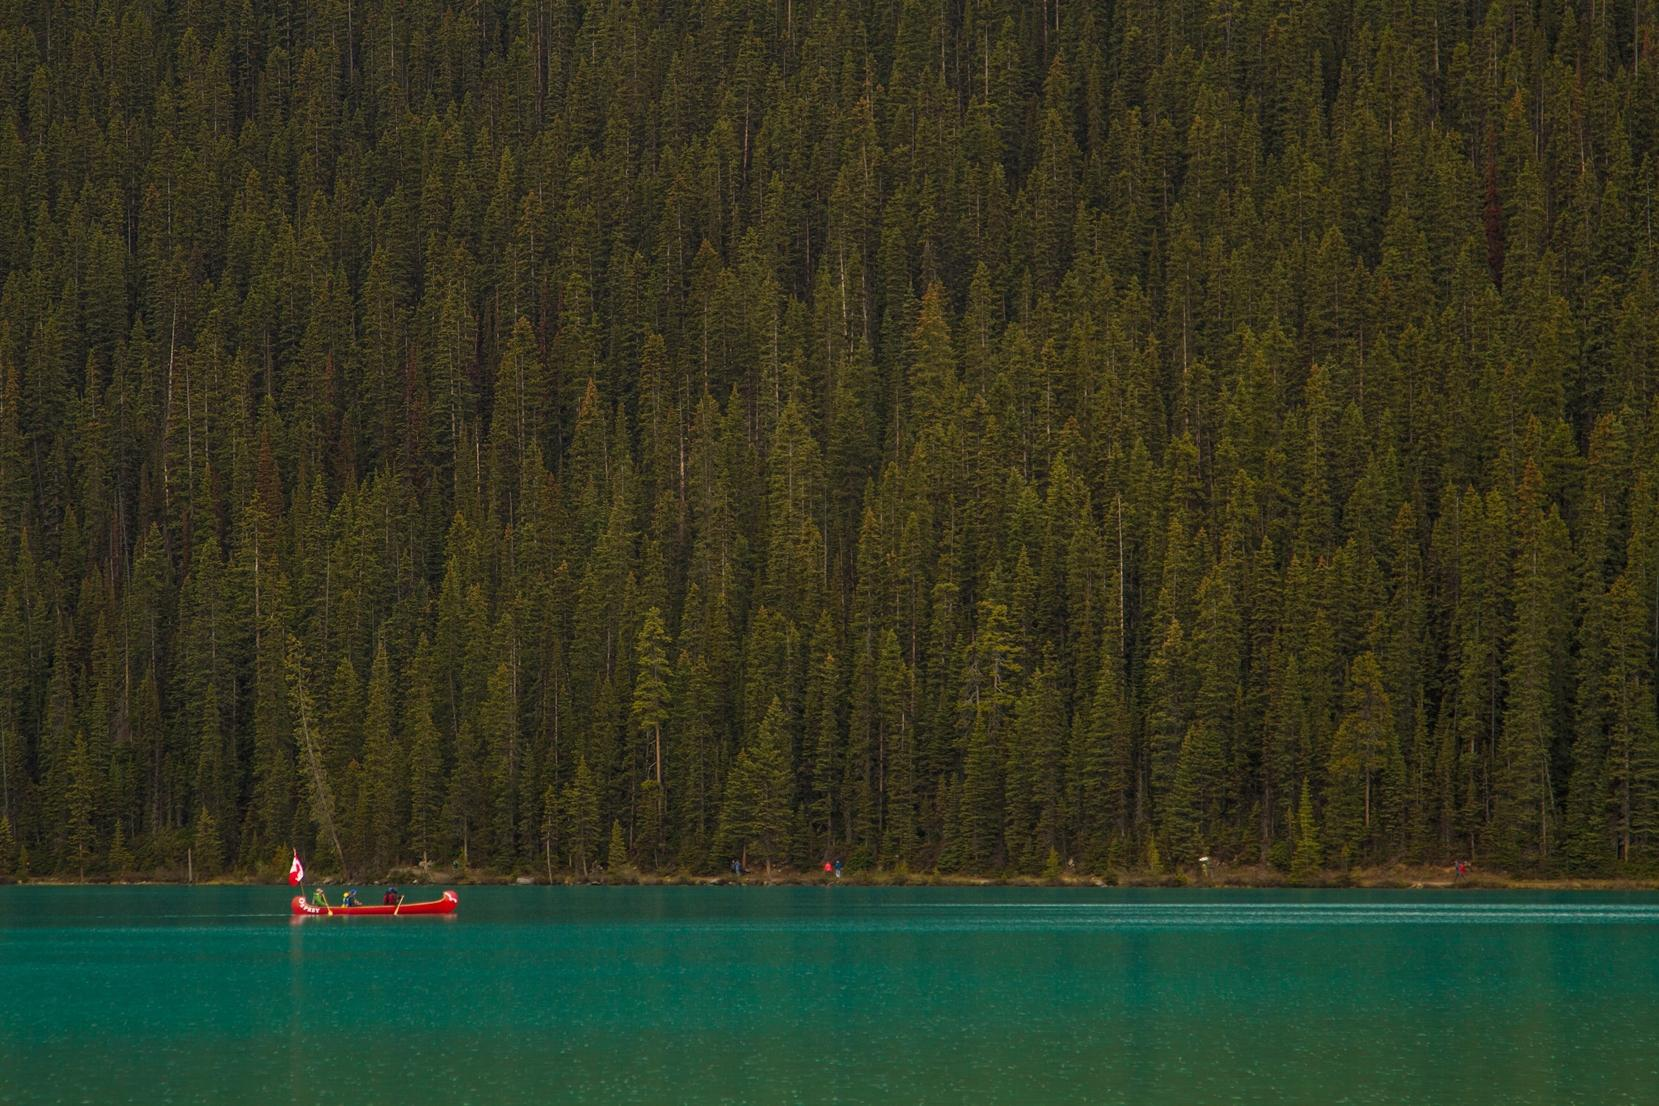 A hour in the Canadian Rockies - image 1 - student project